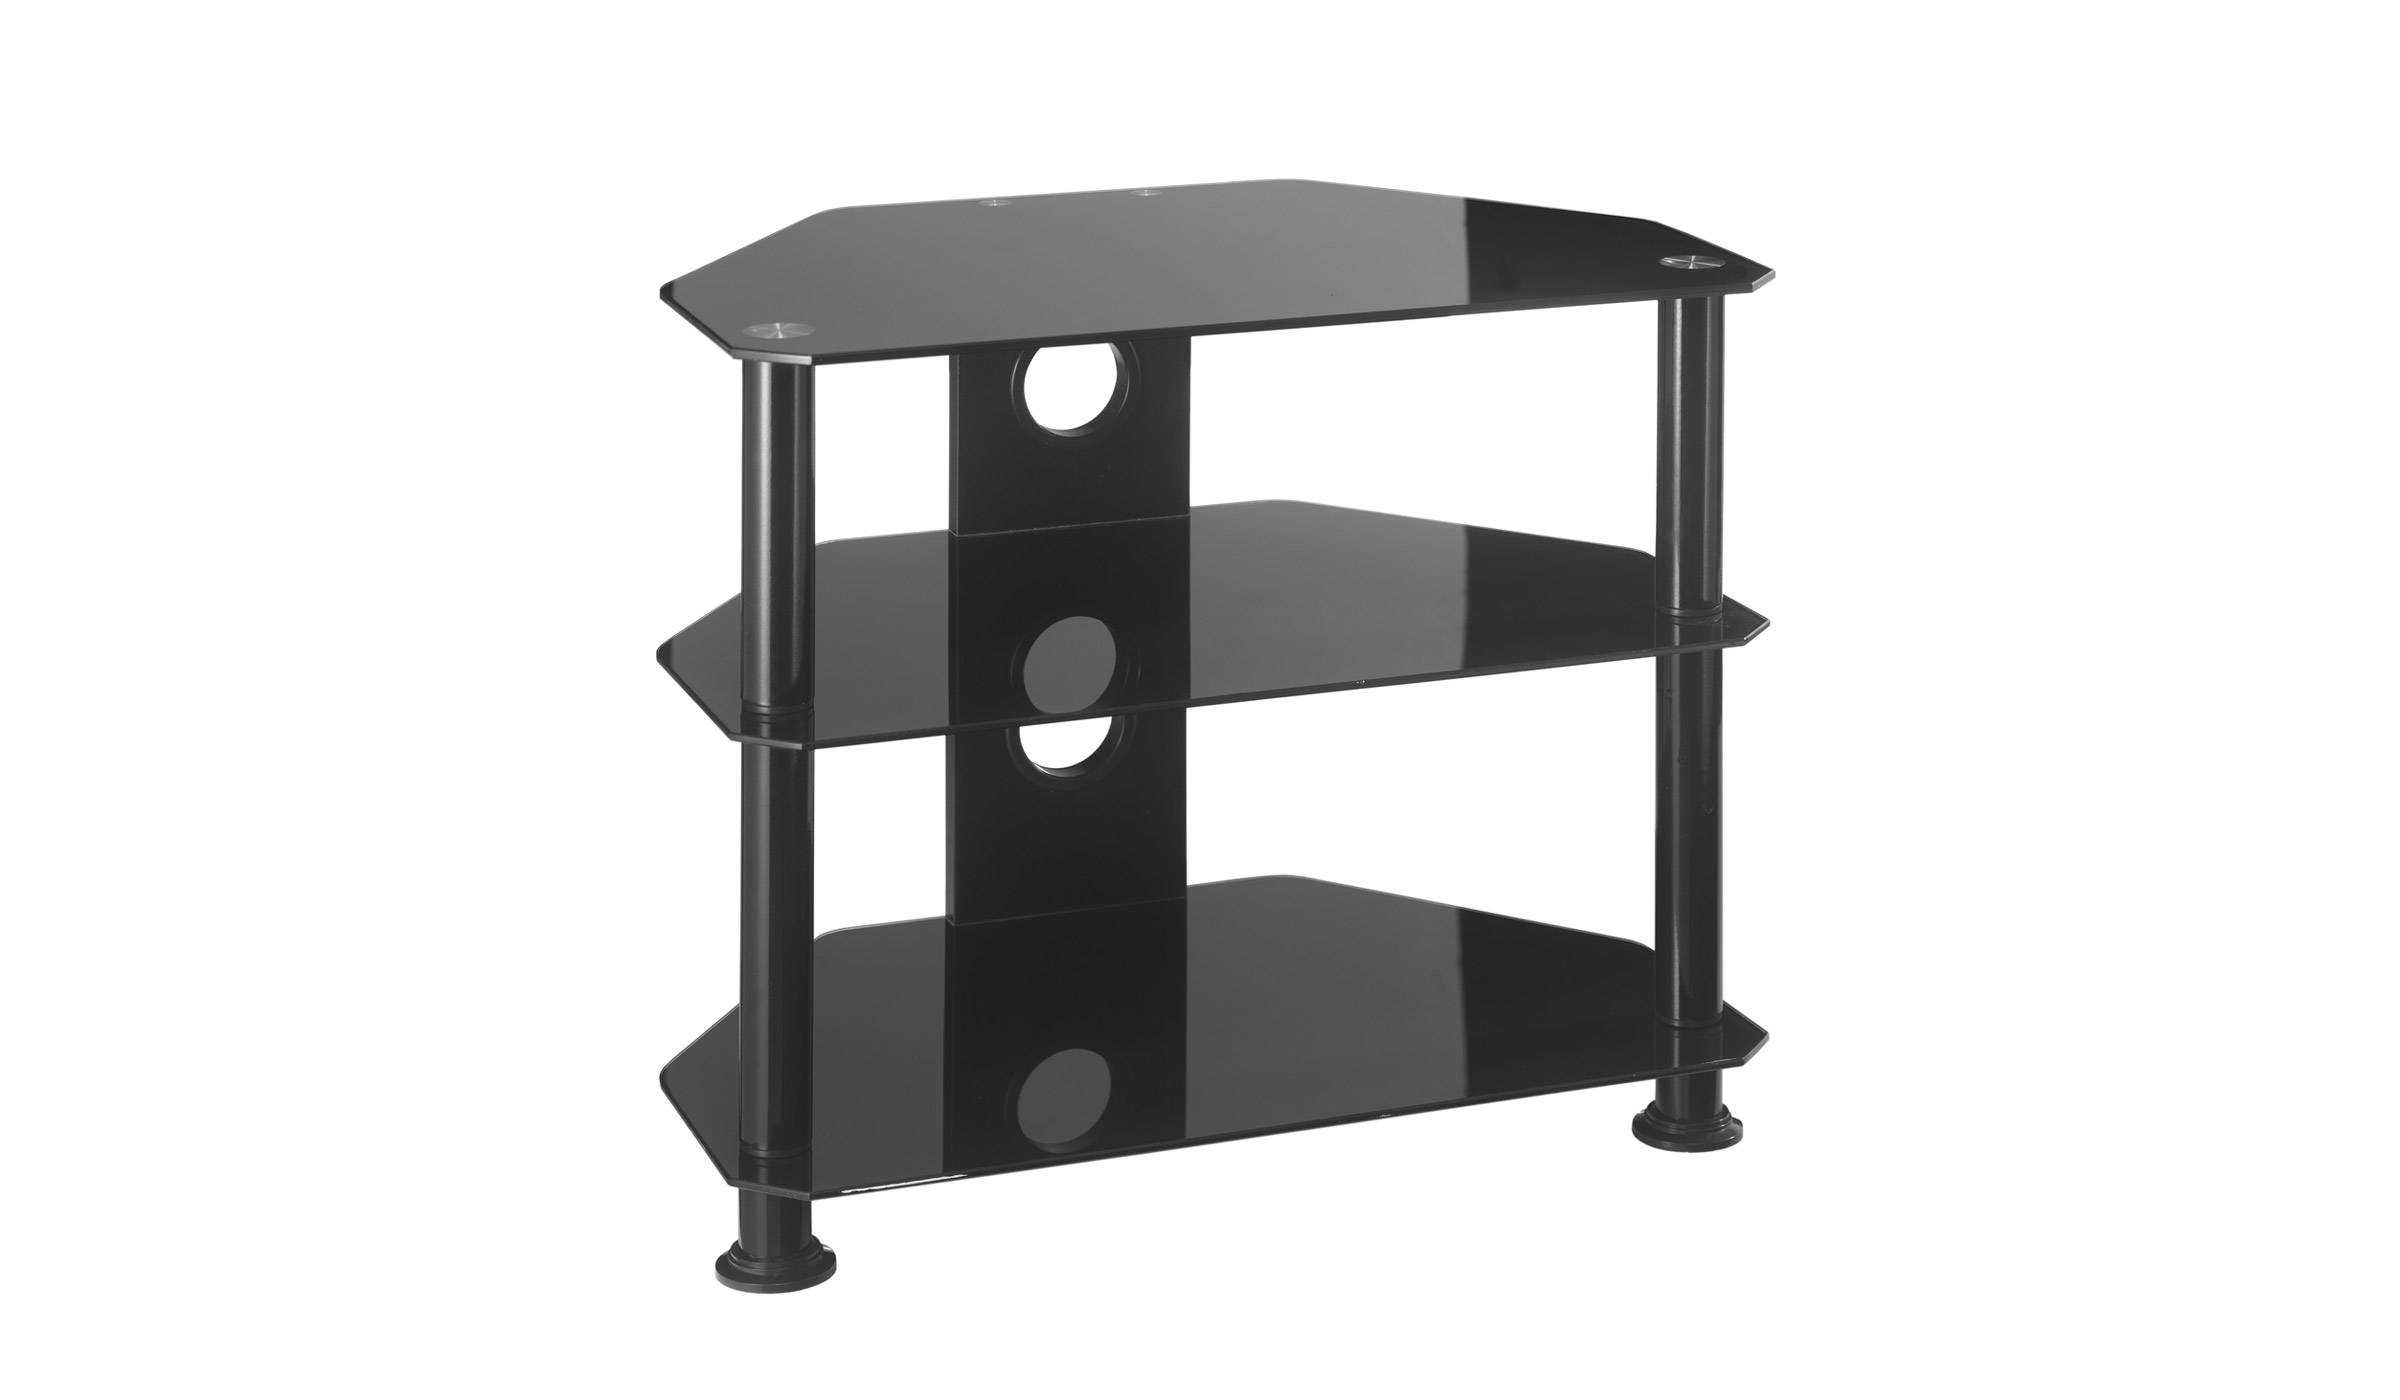 Small Glass Corner Tv Stand Up To 26 Inch Tv | Mmt-Db600 for Small Tv Cabinets (Image 10 of 15)